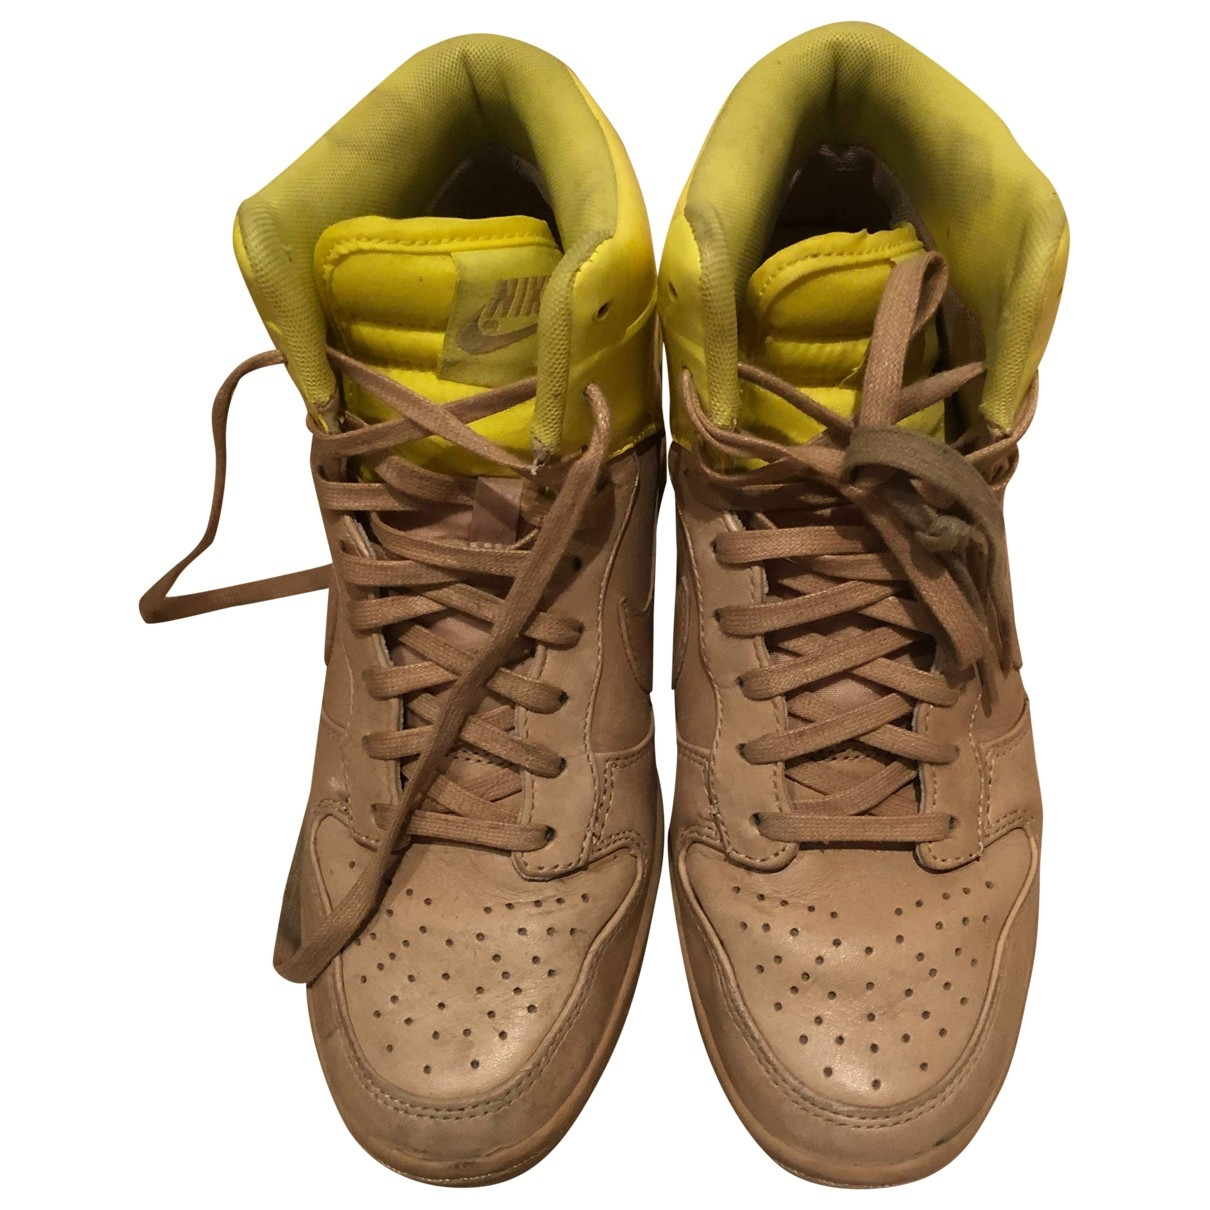 Nike Dunk Sky Beige Leather Trainers for Women 37 EU